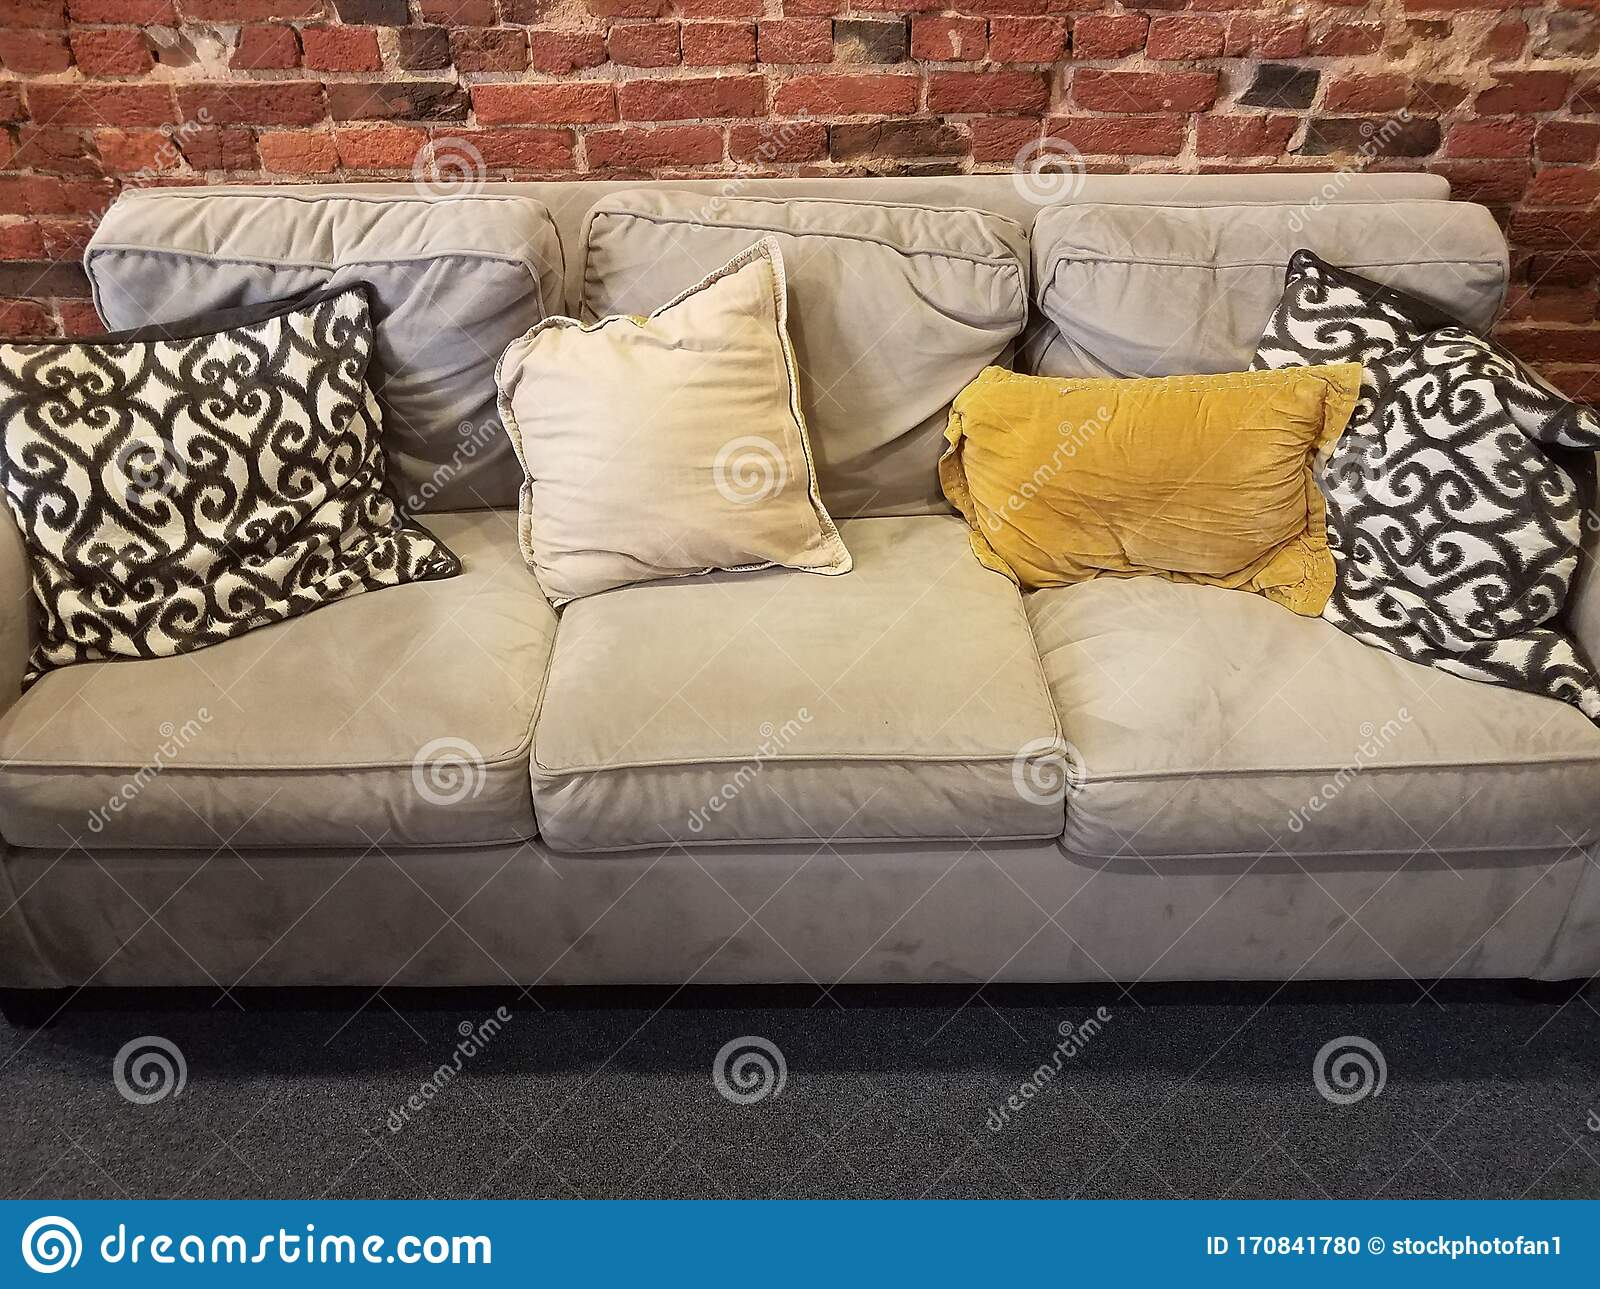 Grey Sofa Or Couch With Black And White And Yellow Pillows Stock Photo Image Of Pillow Yellow 170841780